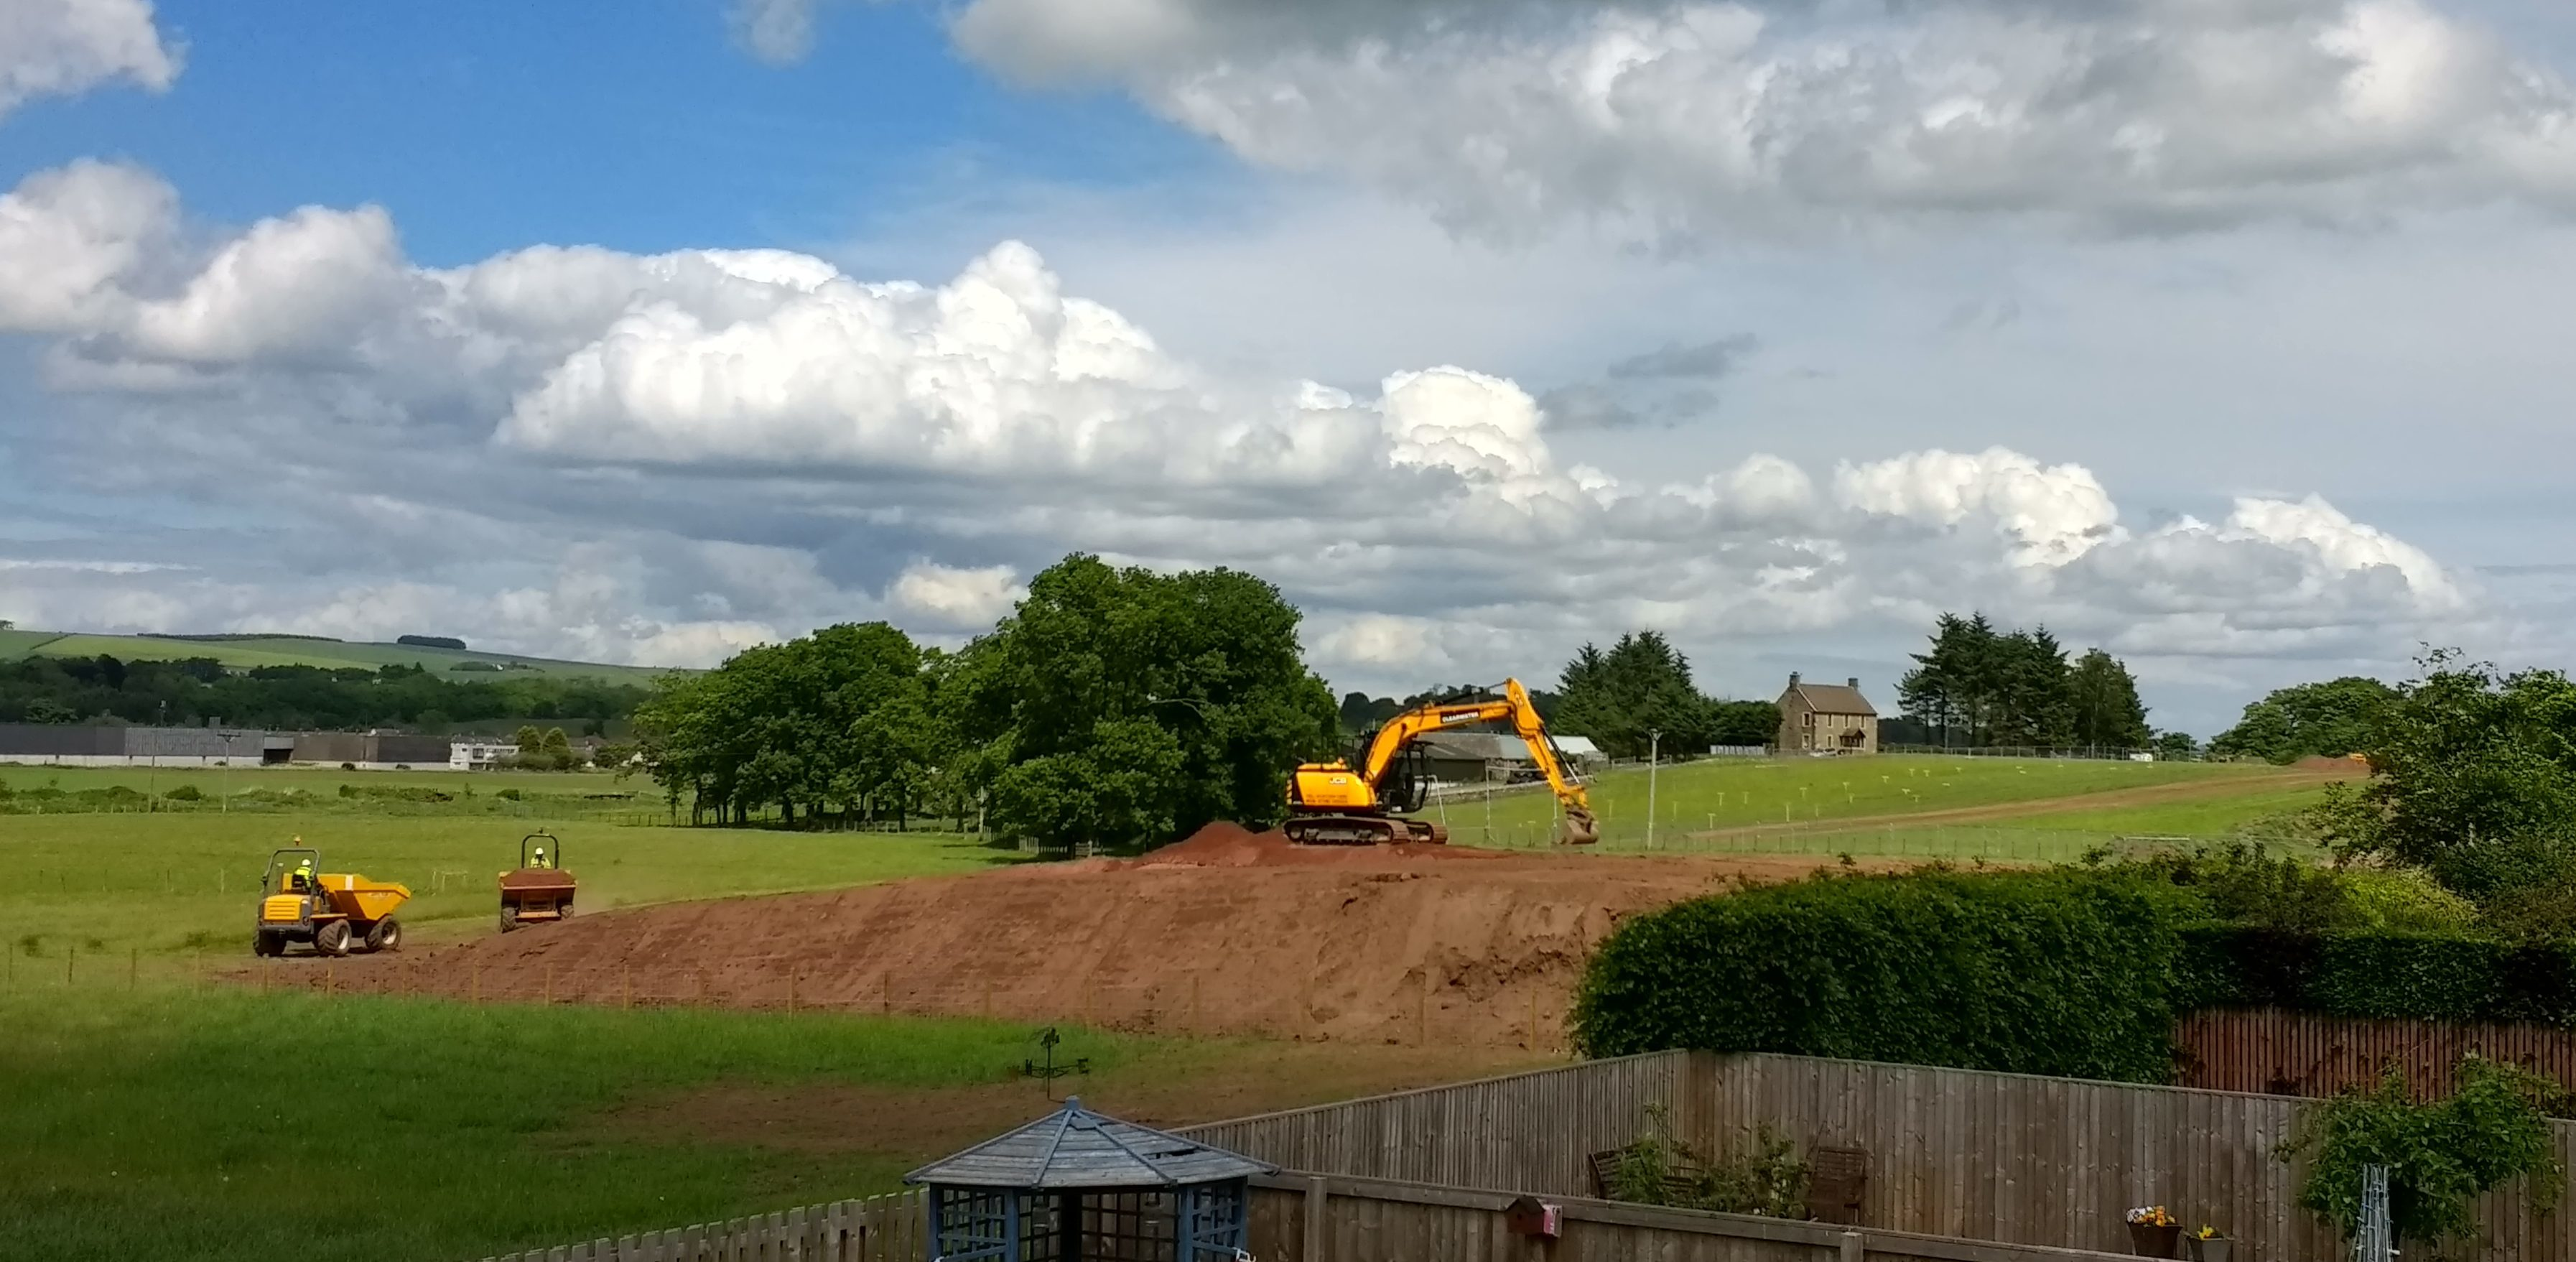 Work taking place at Lathro Farm, Kinross.